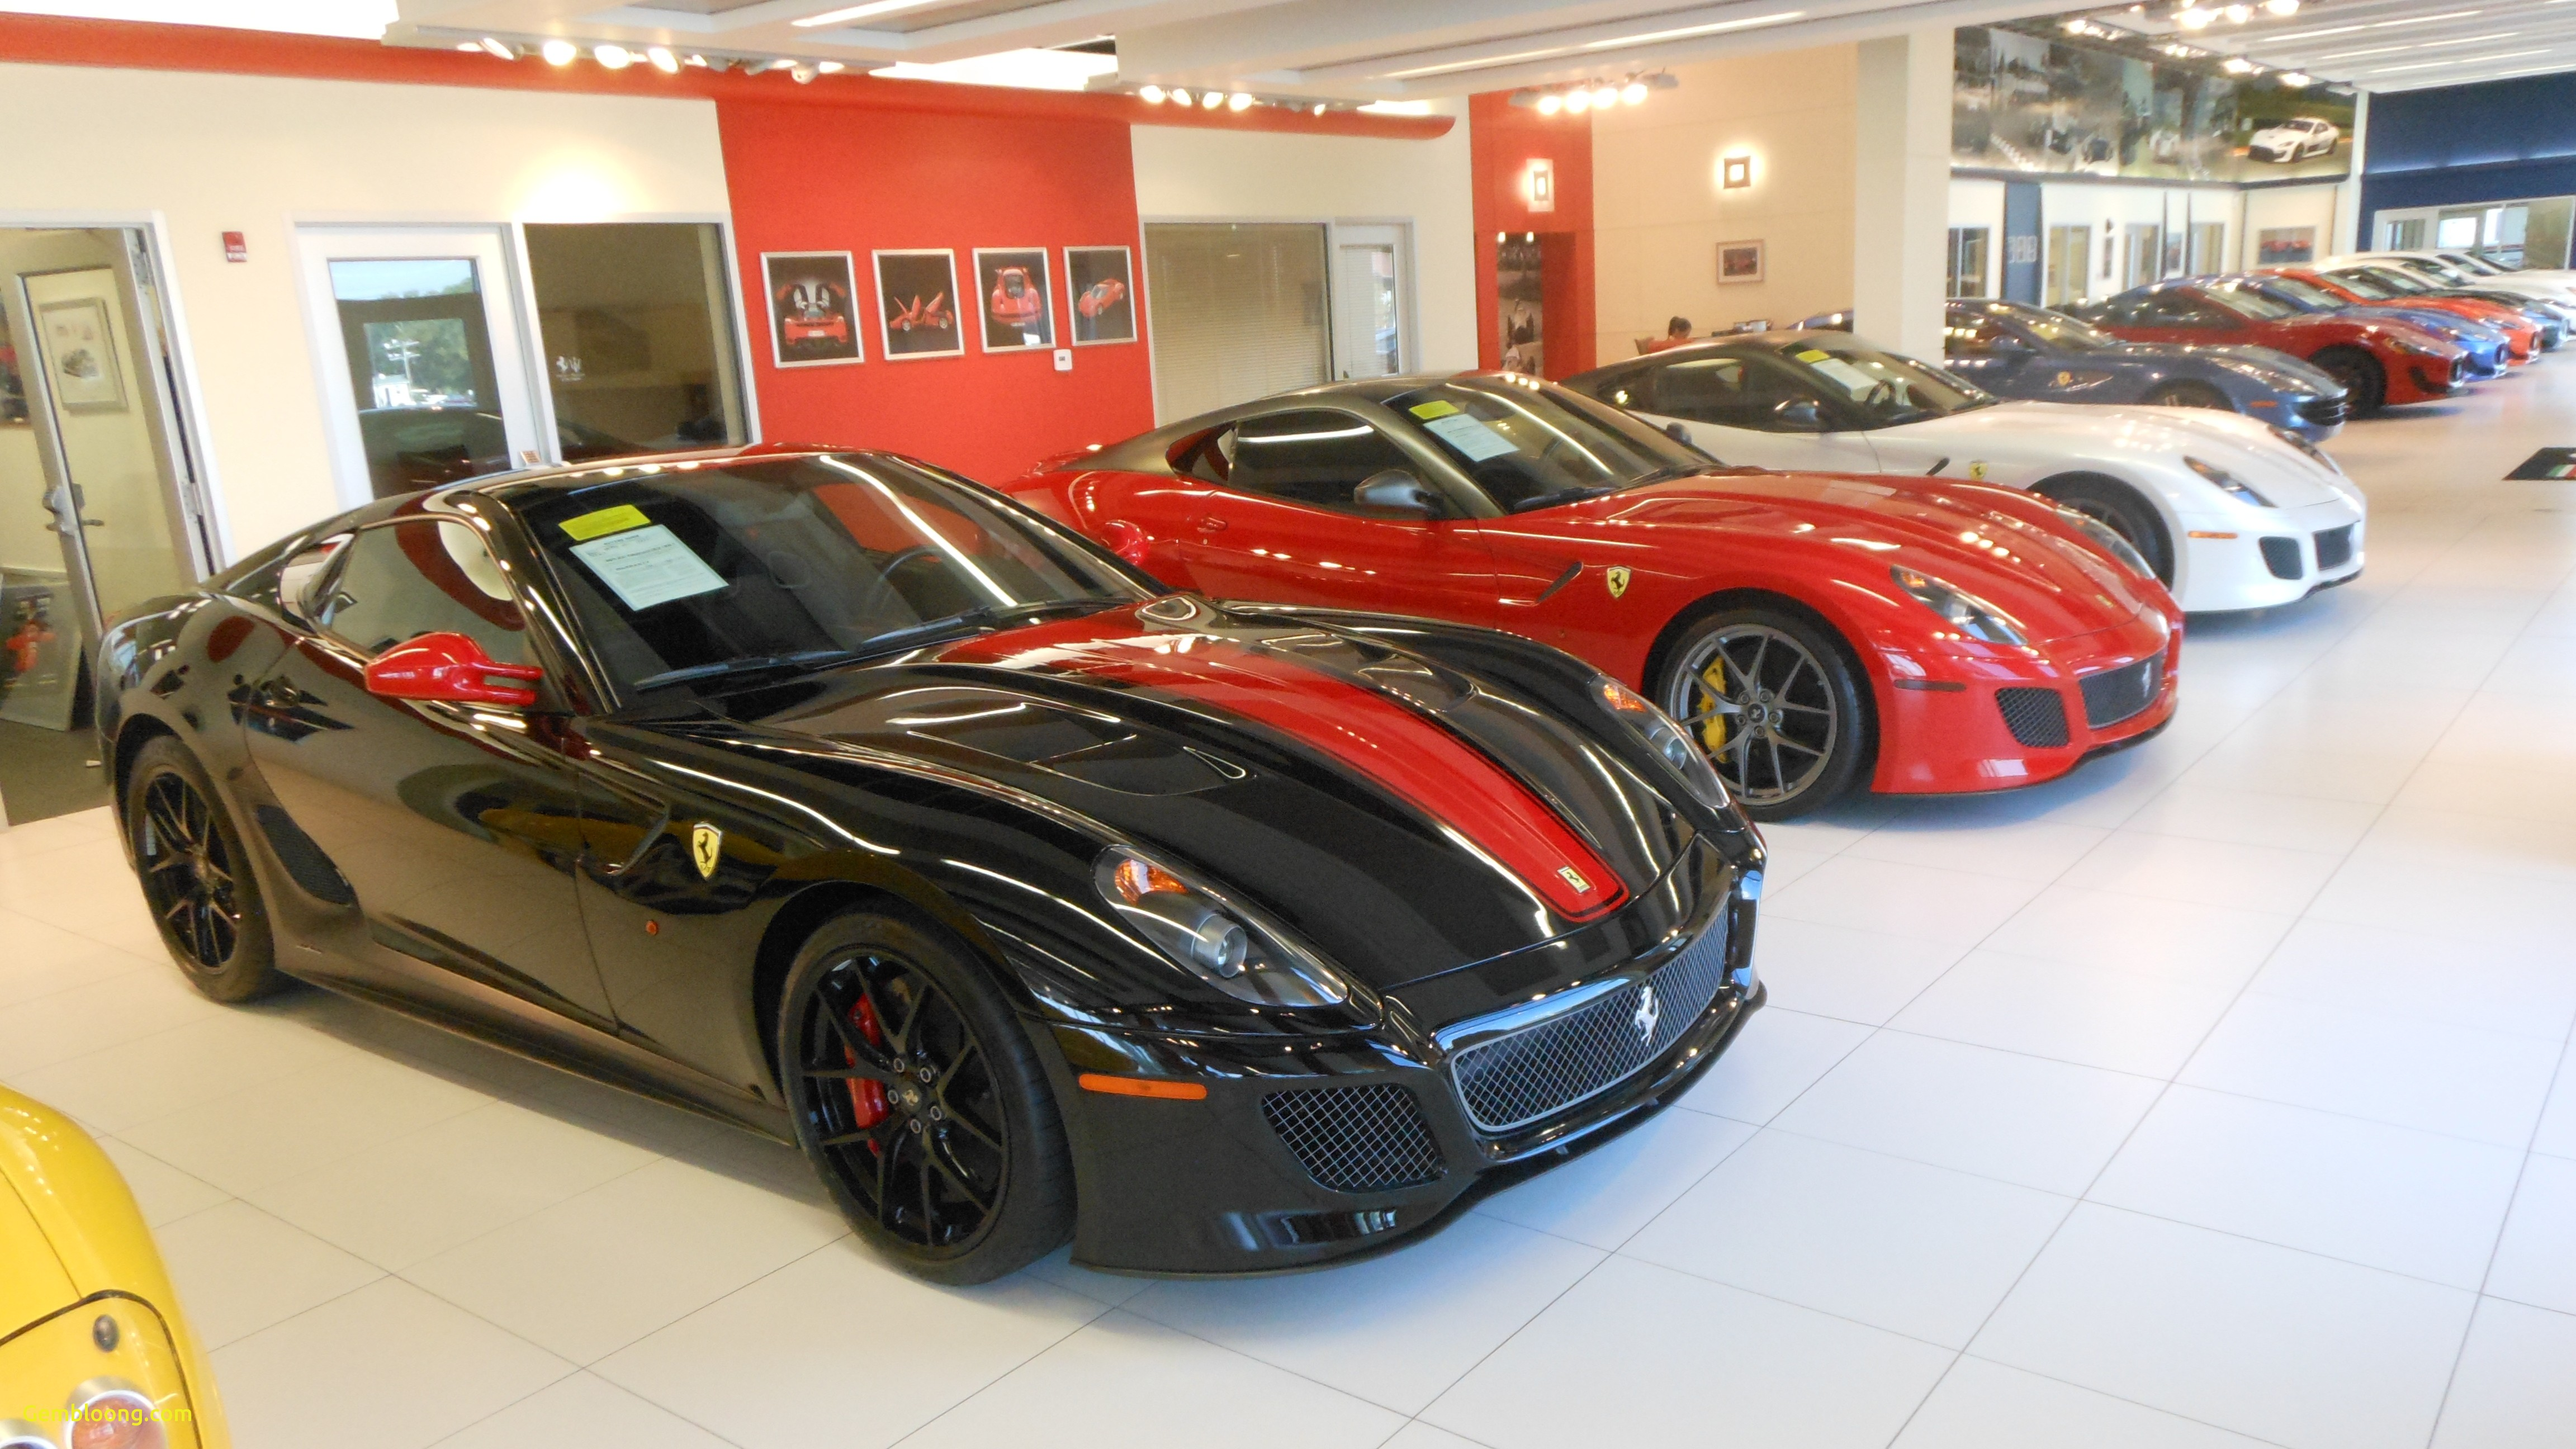 Car Lot Near Me >> Awesome Local Car Lots Used Cars